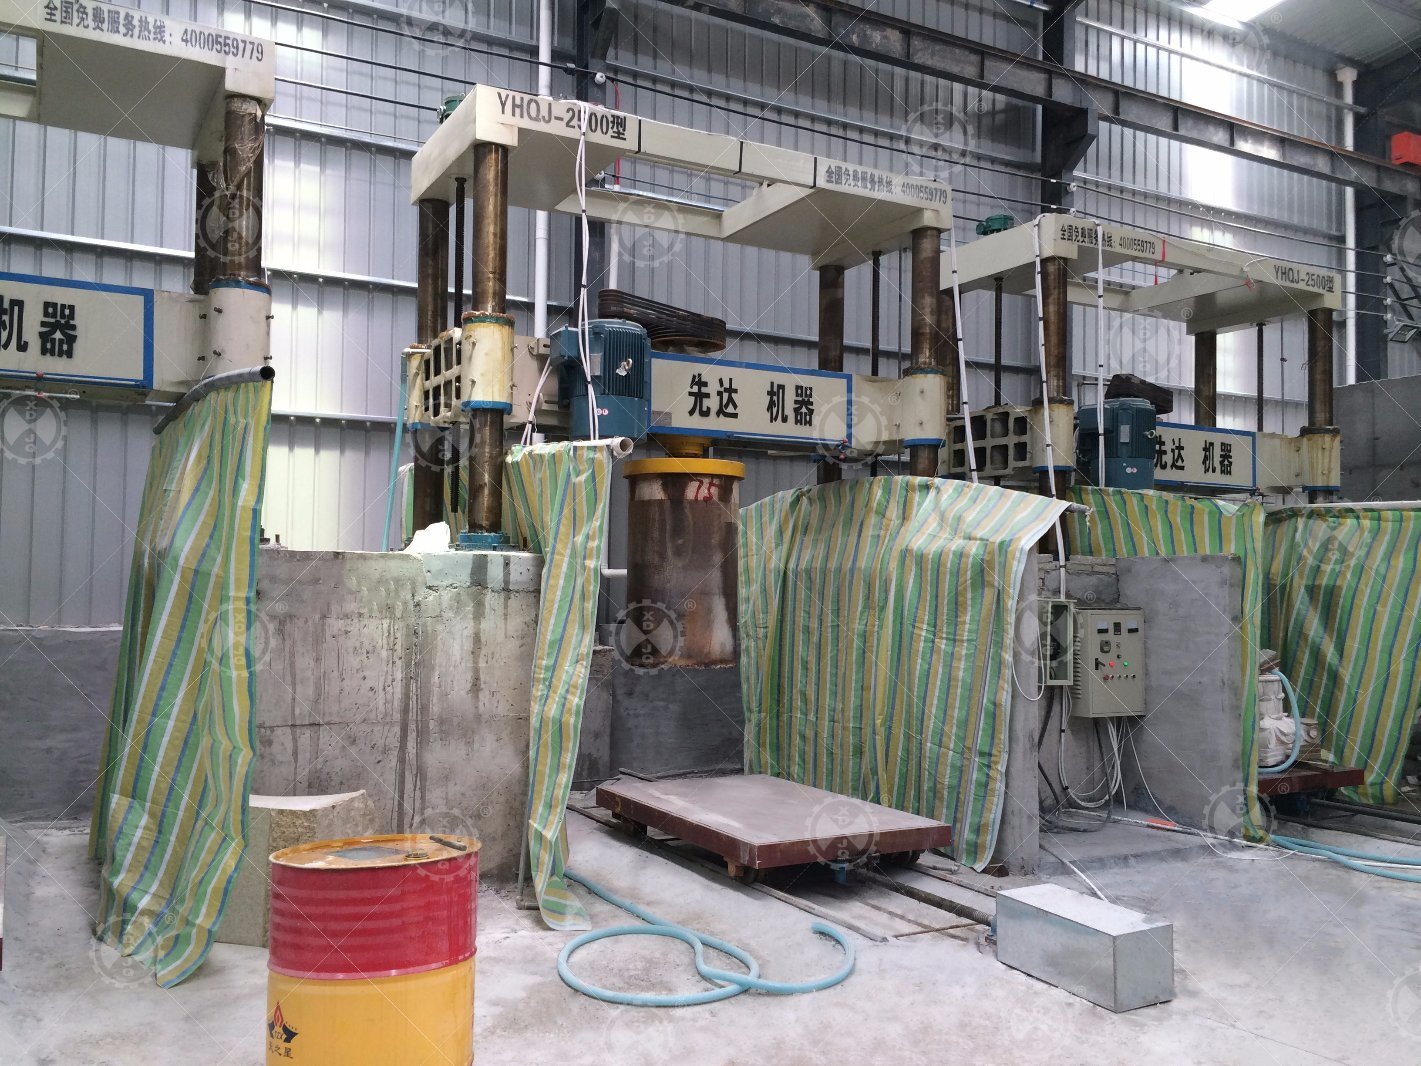 Yhqj-2500 Gantry Stone Cutting Machine for Column Slab